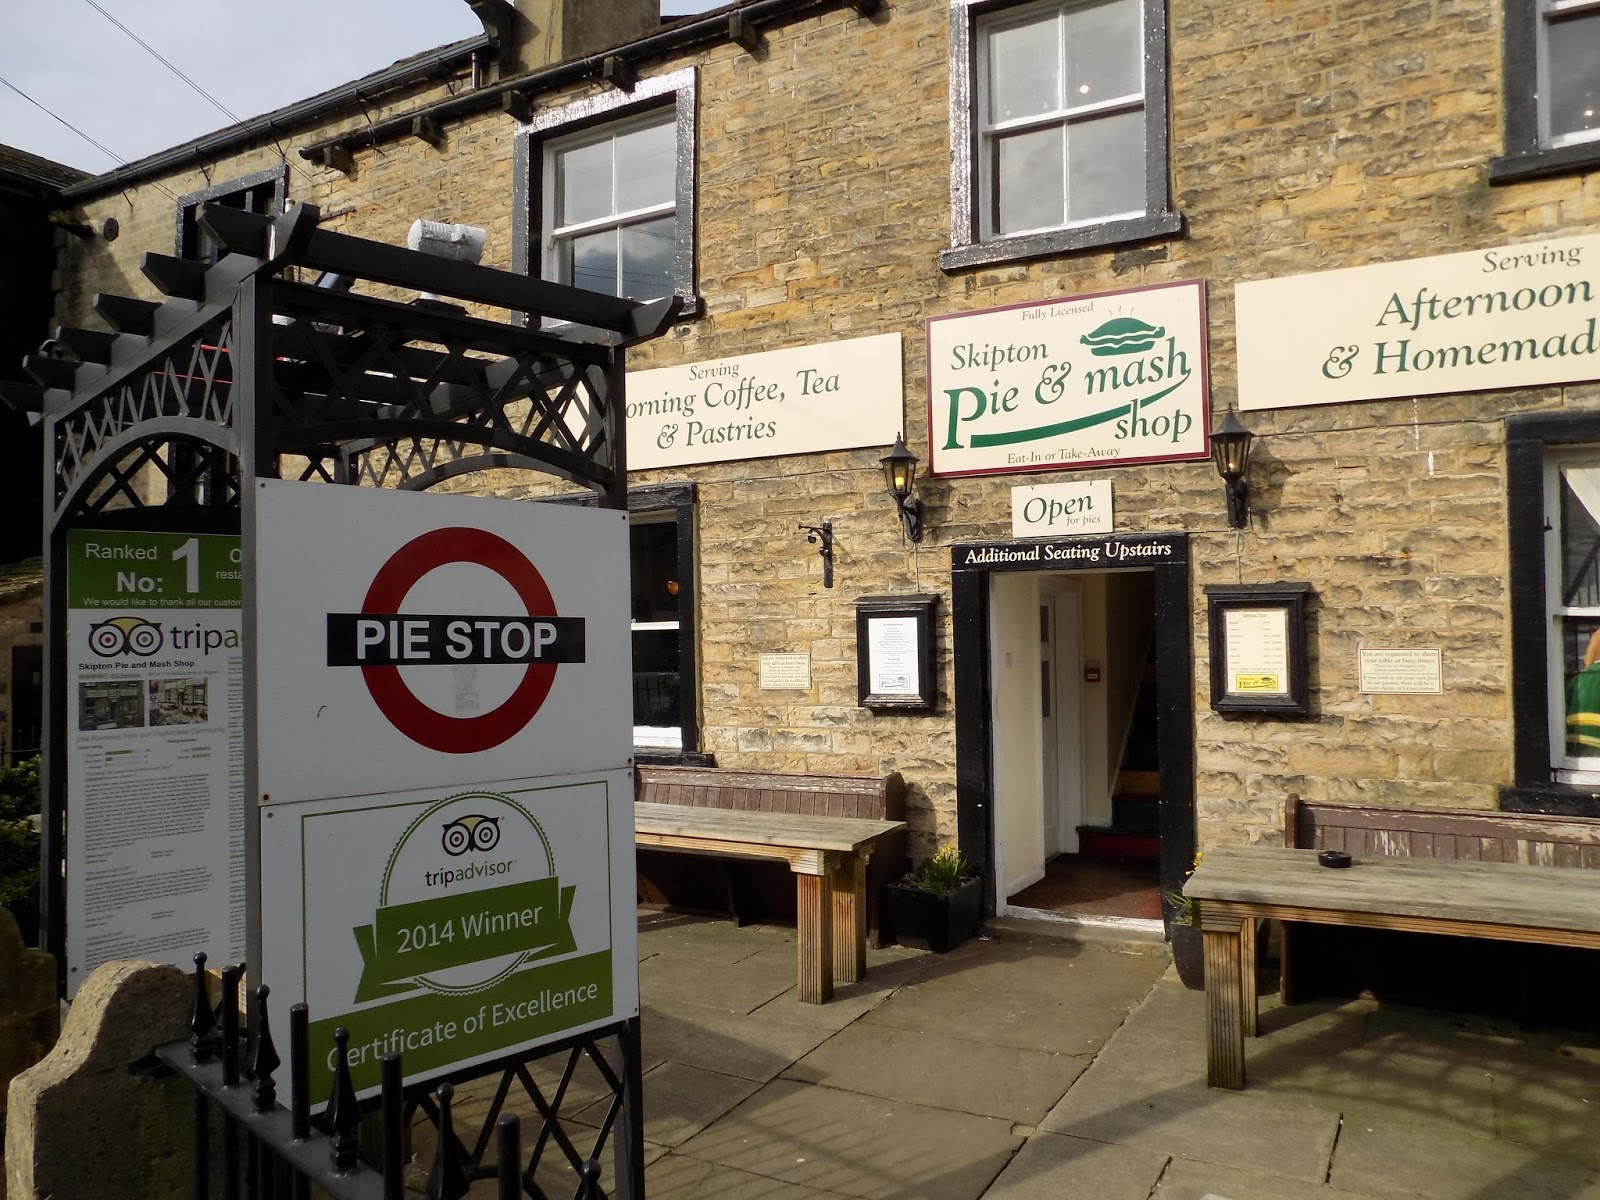 Skipton pie and mash shop